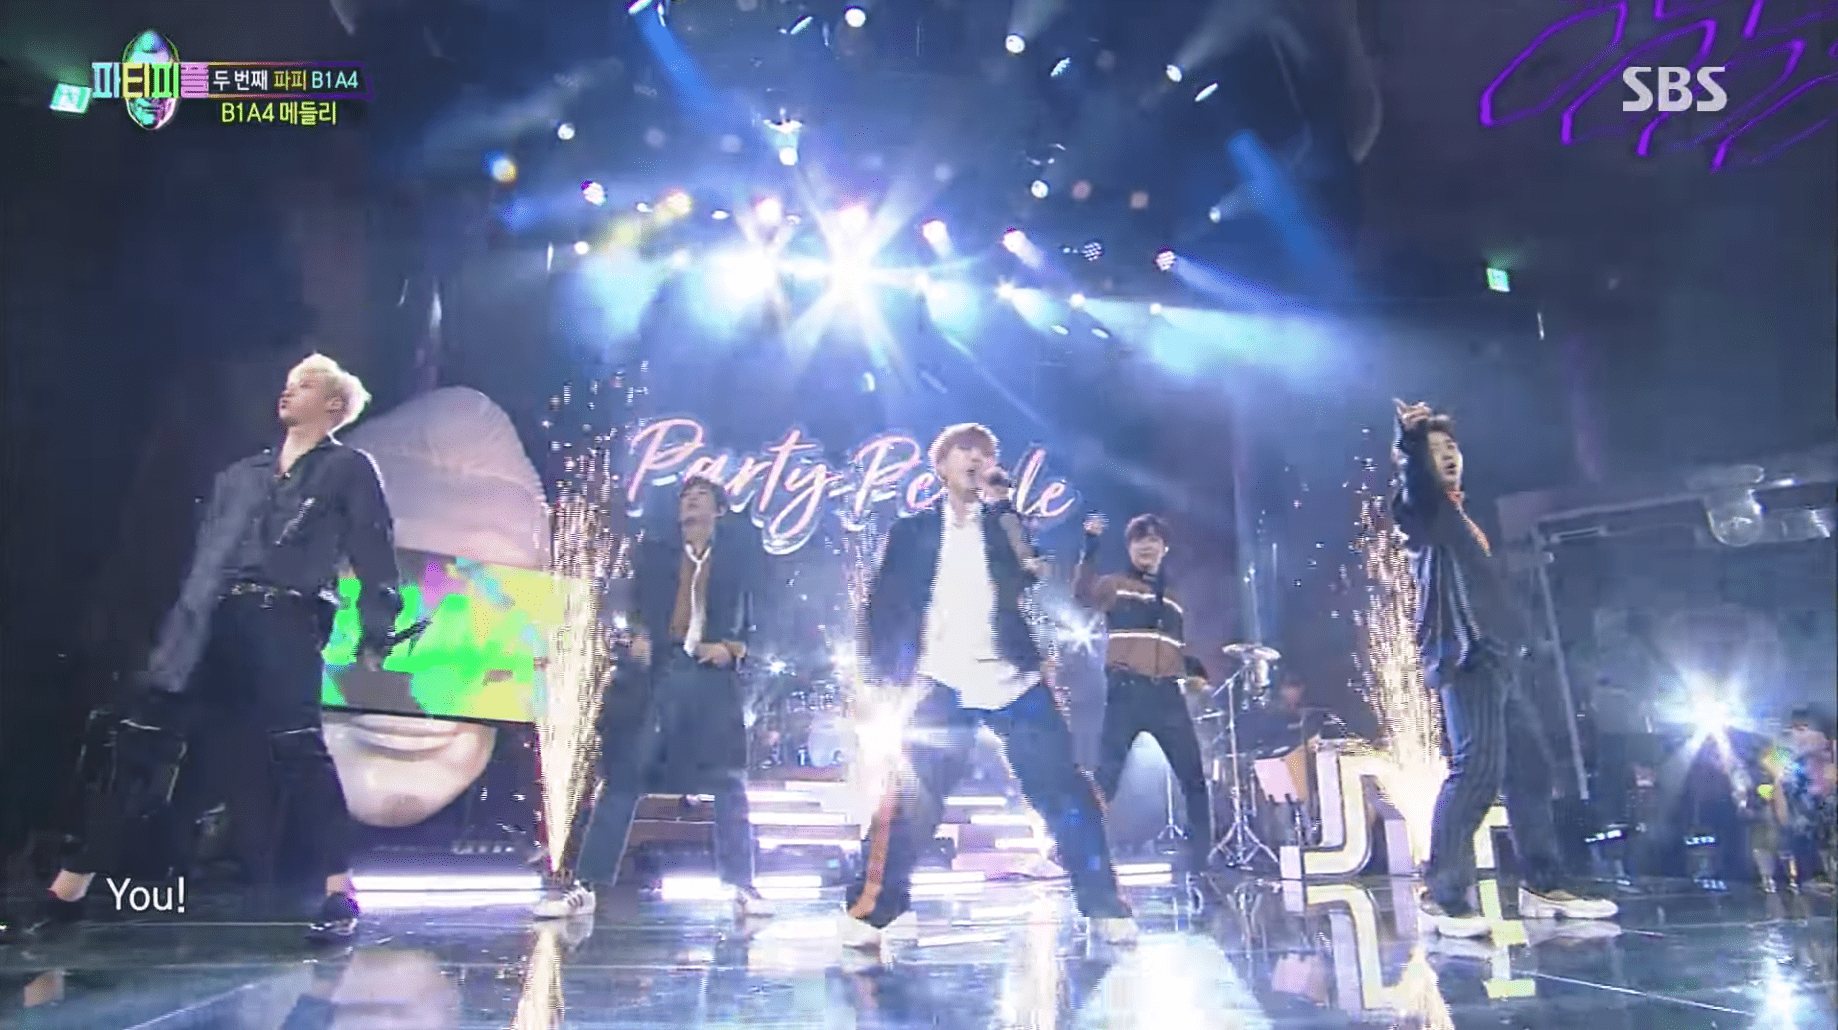 """Watch: B1A4 Performs Their Own Hits Medley, I.O.I's """"In The Same Place,"""" And More On """"JYP's Party People"""""""